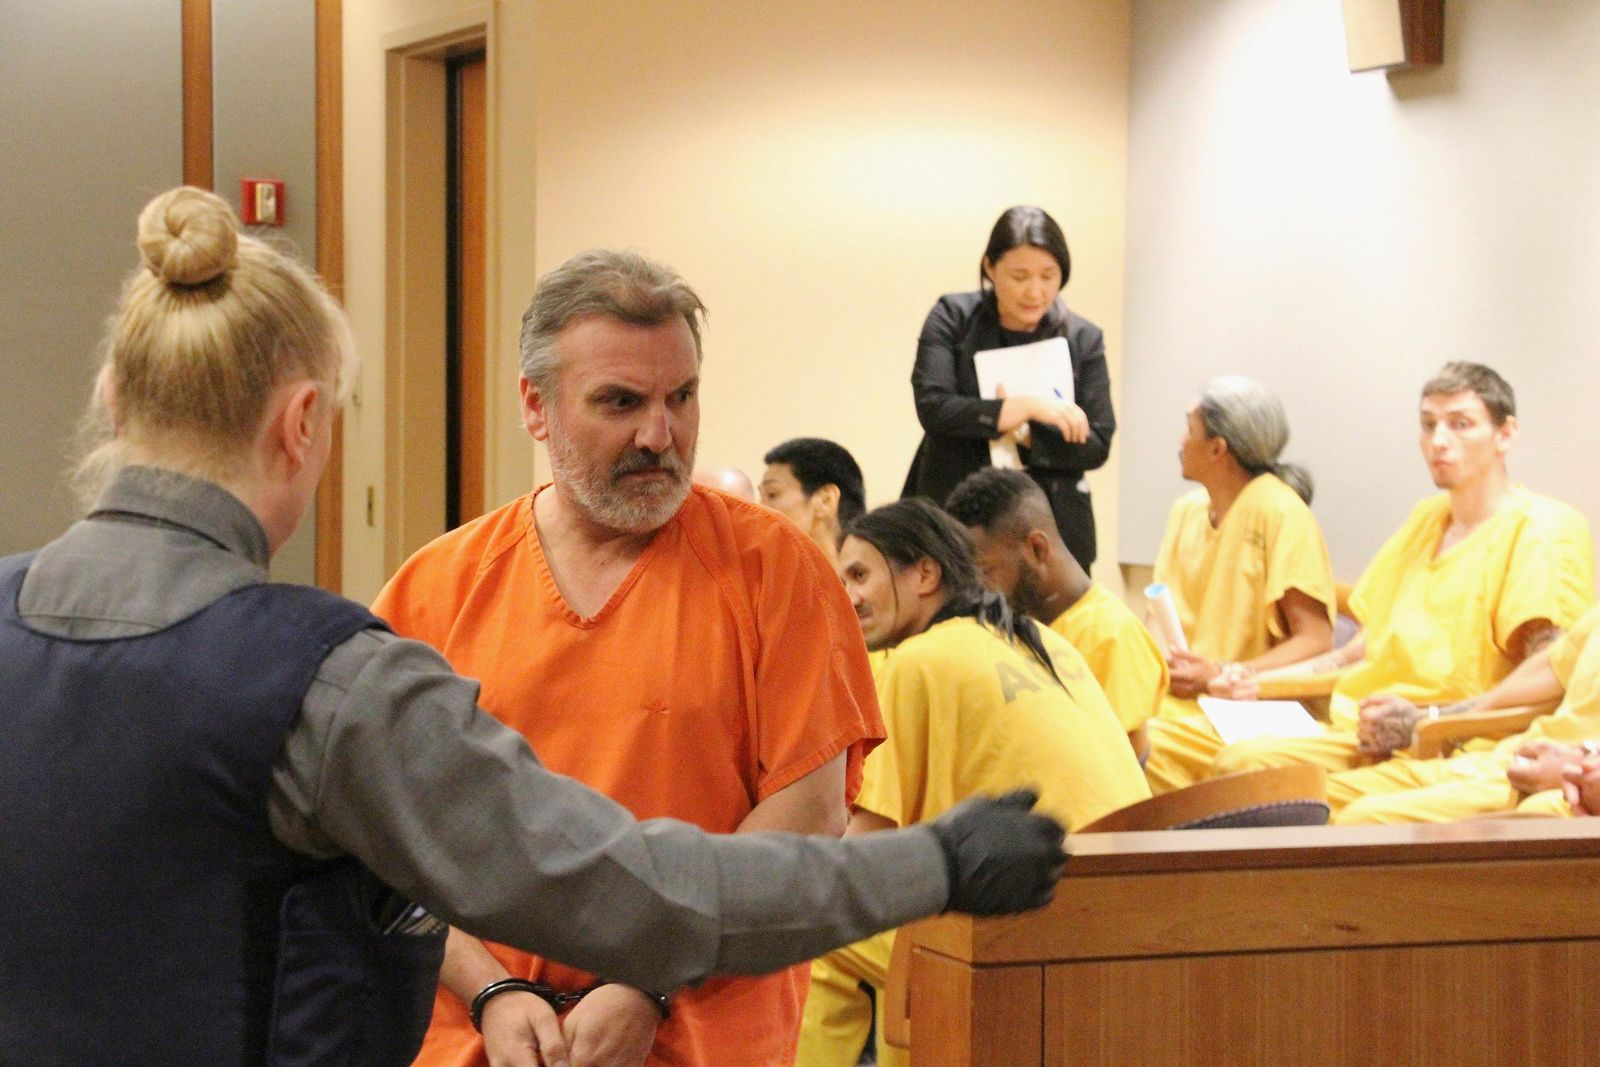 Brian Steven Smith, second from left, is escorted out of a courtroom in Anchorage, Alaska, Monday, Oct. 21, 2019. Smith has pleaded not guilty to 14 charges stemming from the deaths of two Alaska Native women. (AP Photo/Mark Thiessen)